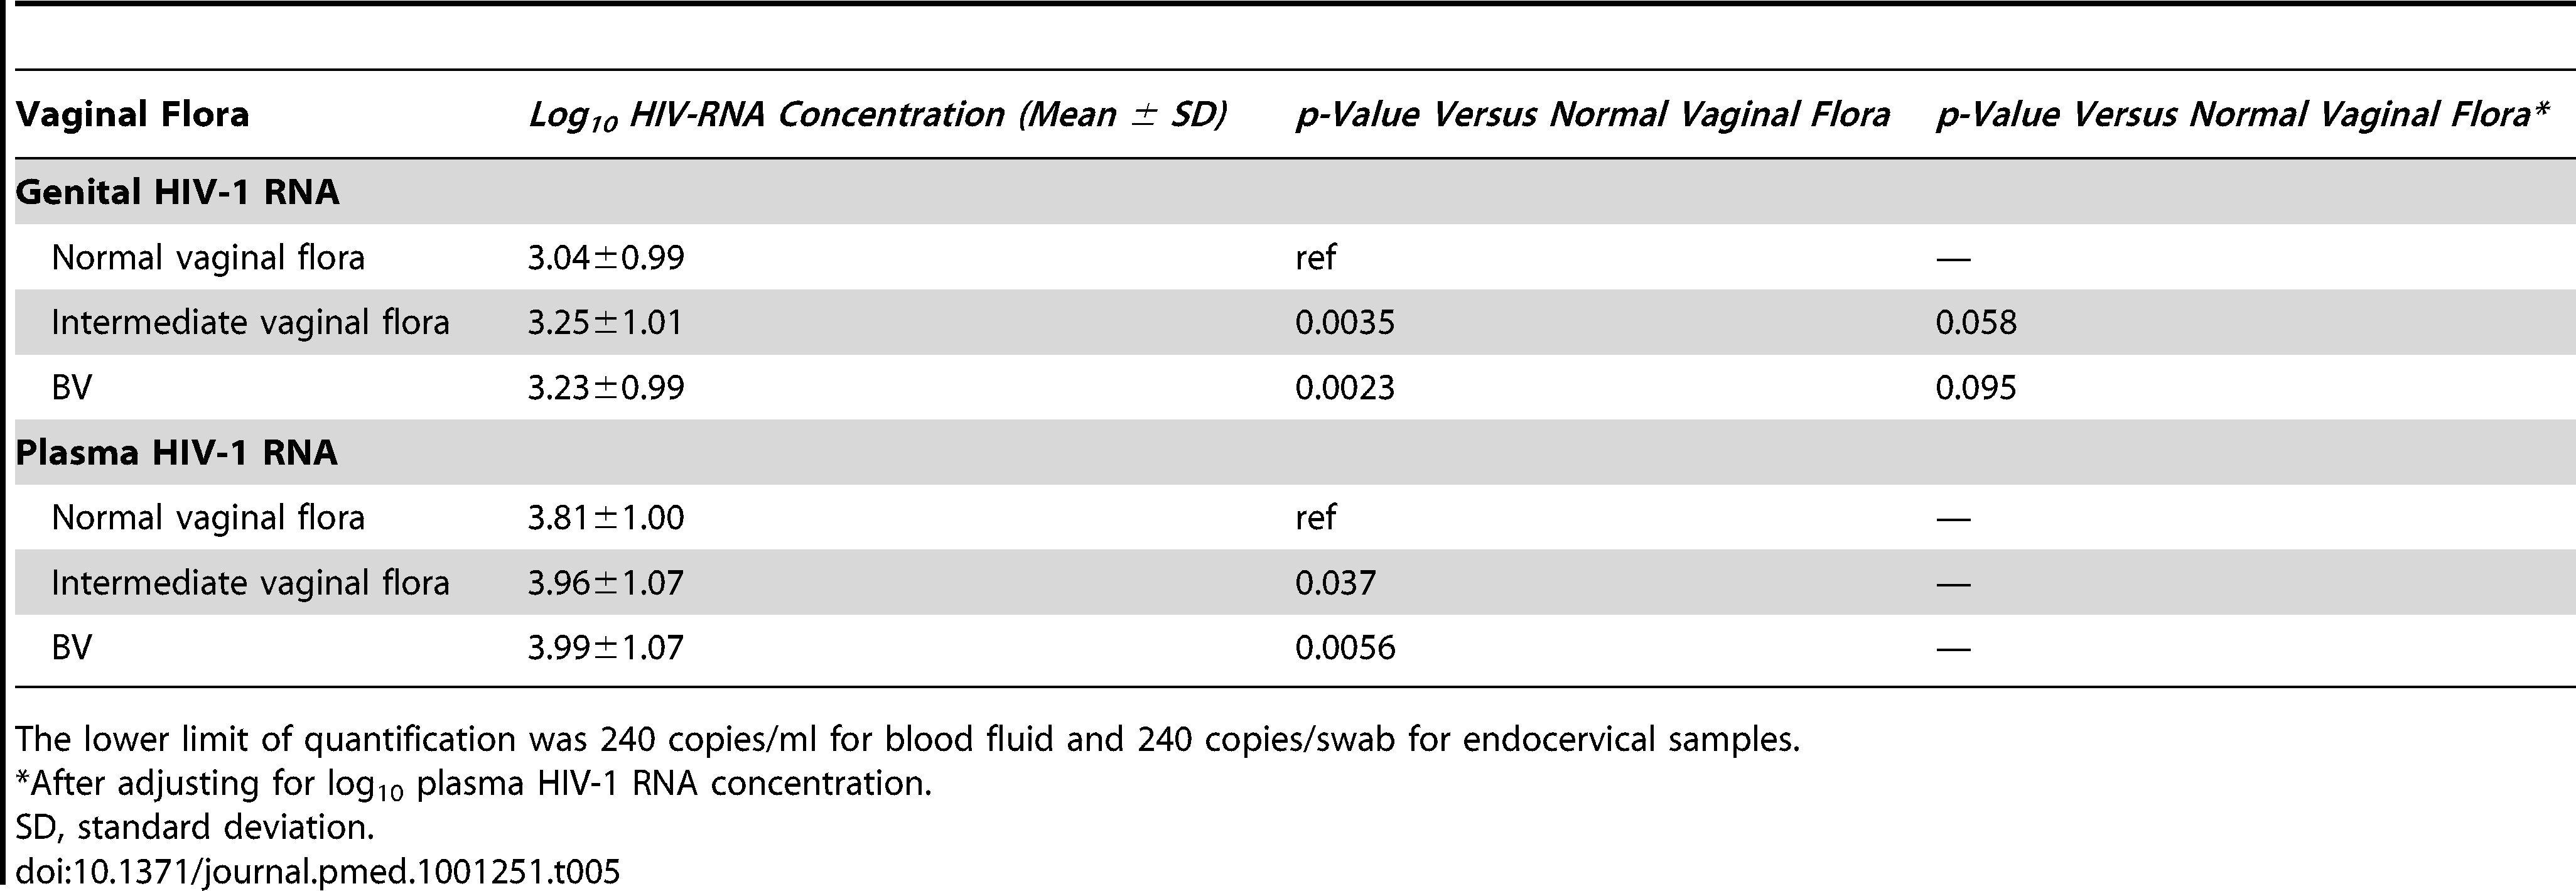 Log<sub>10</sub> HIV-RNA concentration in plasma (baseline and follow-up) and female genital secretions (6-mo follow-up visit) compared by vaginal flora category (normal vaginal flora, intermediate vaginal flora, and BV).